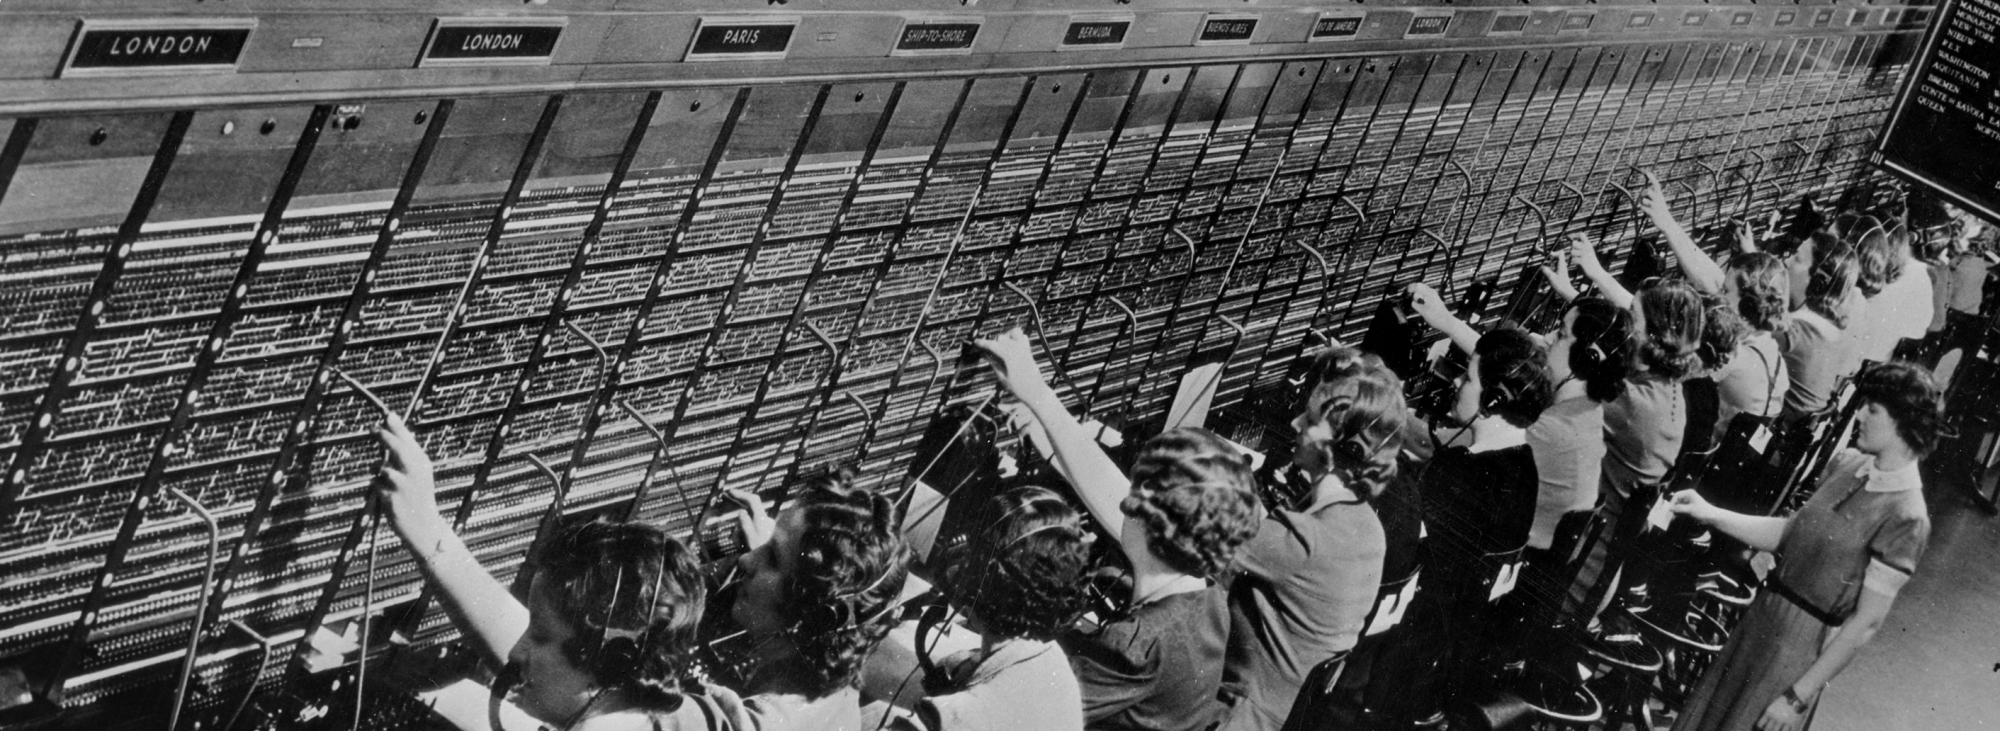 Pic_Switchboard_Crop1